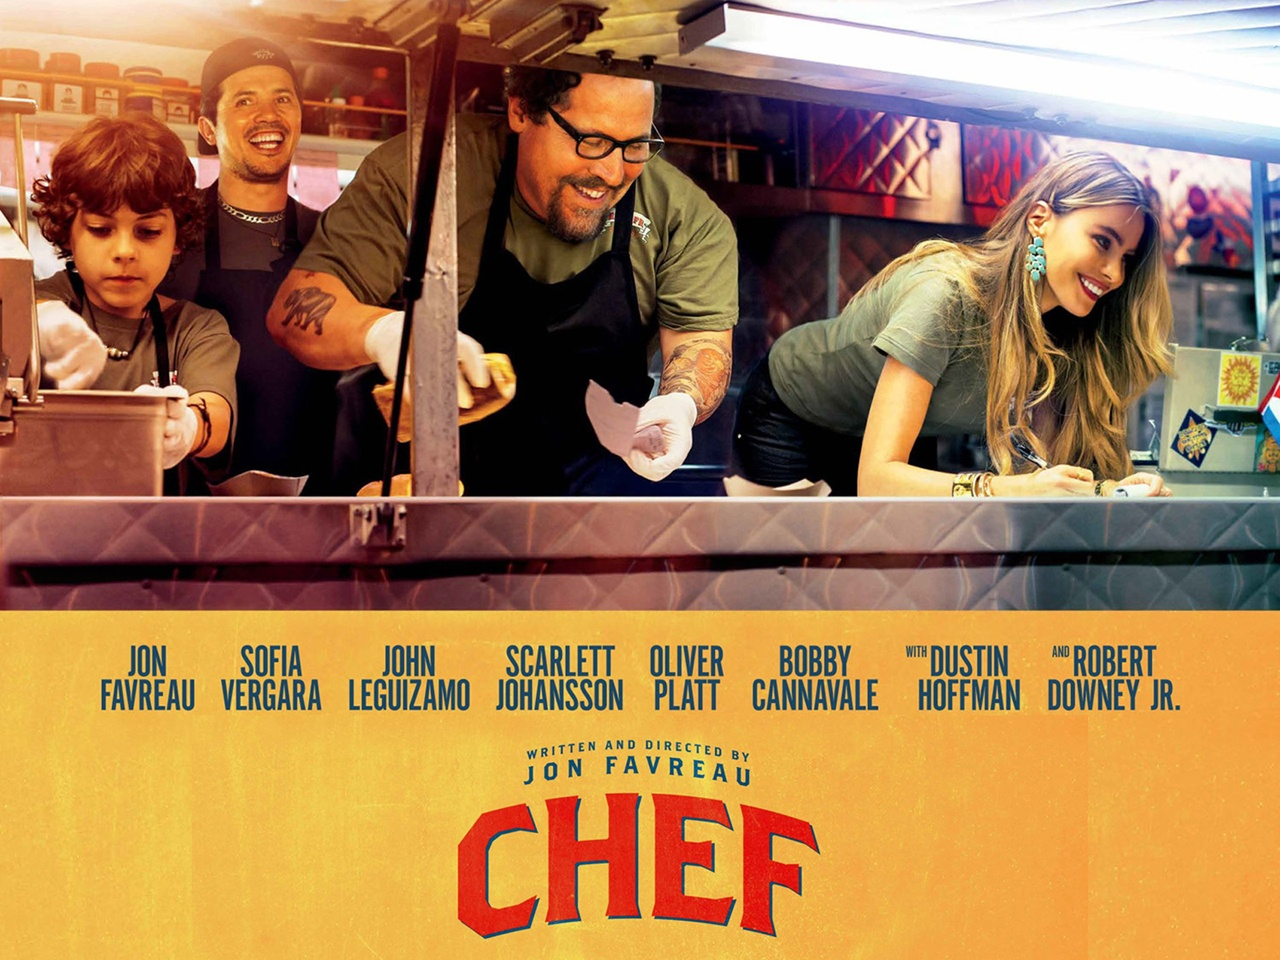 """Funny, charming and an all round crowd pleaser"" – Alex O'Meara reviews Chef"